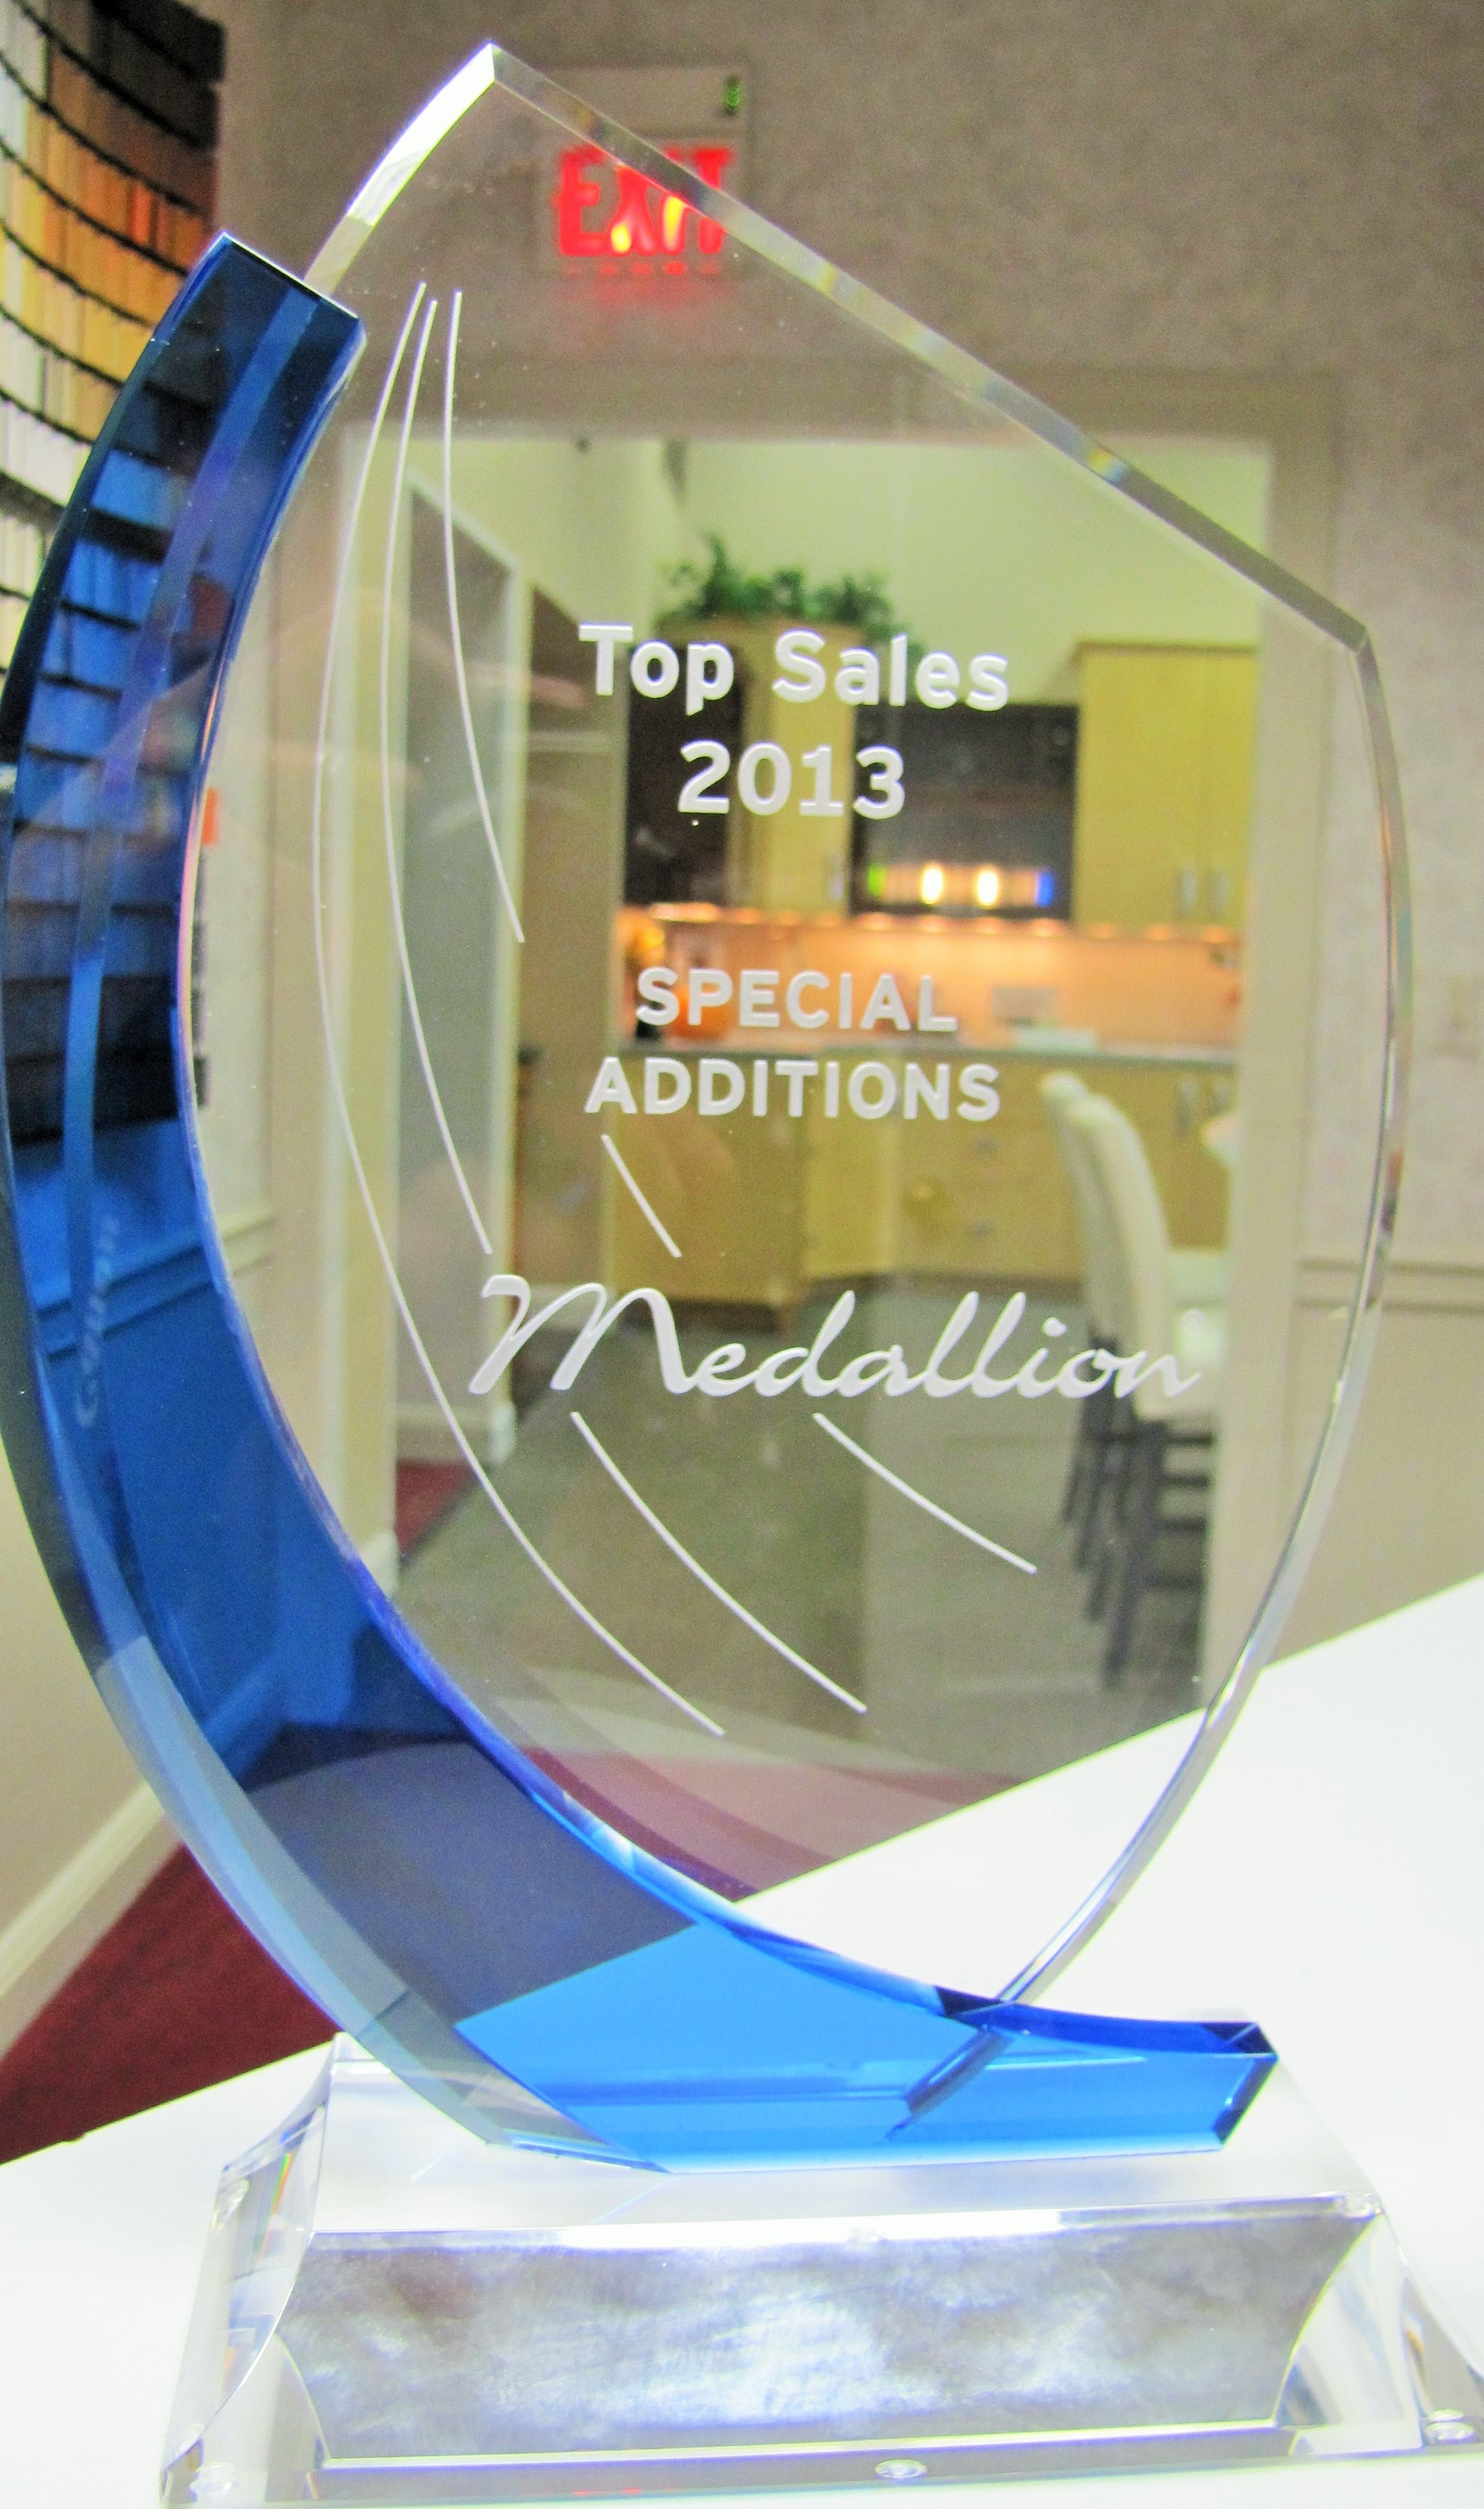 Top Sales 2013 Special Addition Award